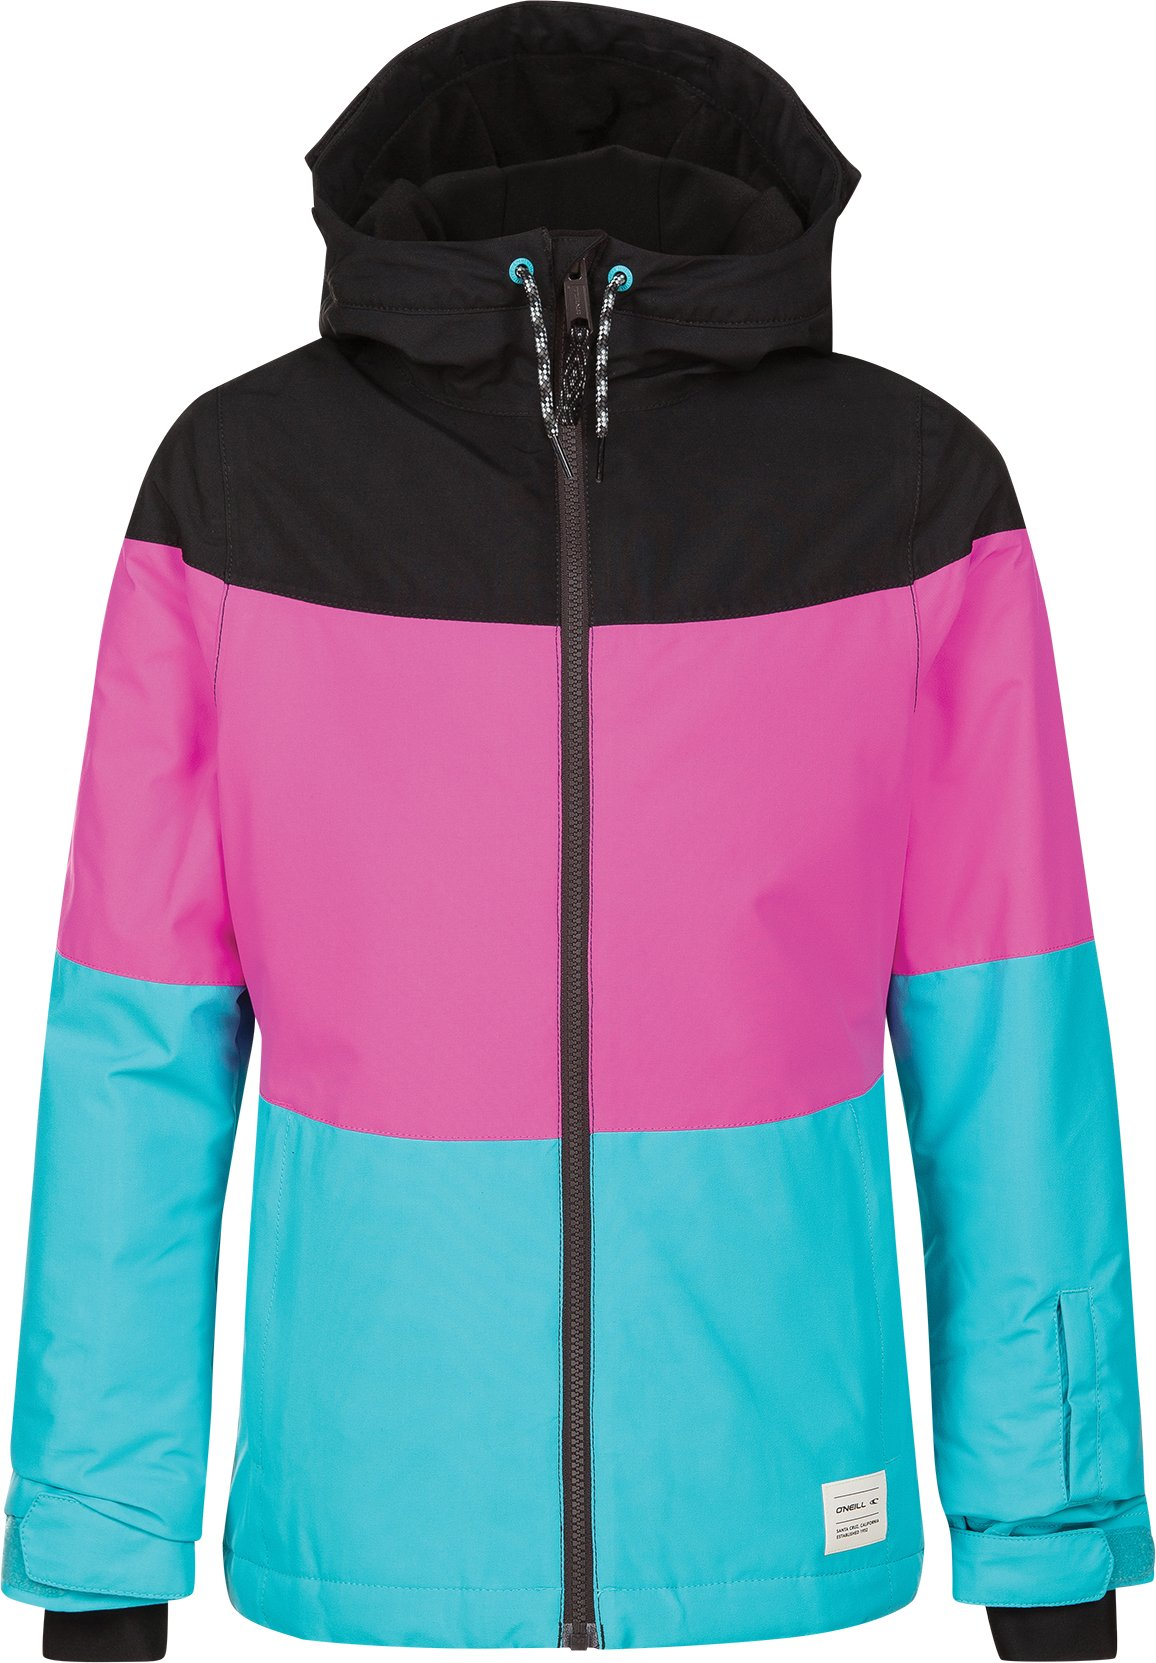 O'Neill Girls Coral Jacket, Teal Blue, Size 16